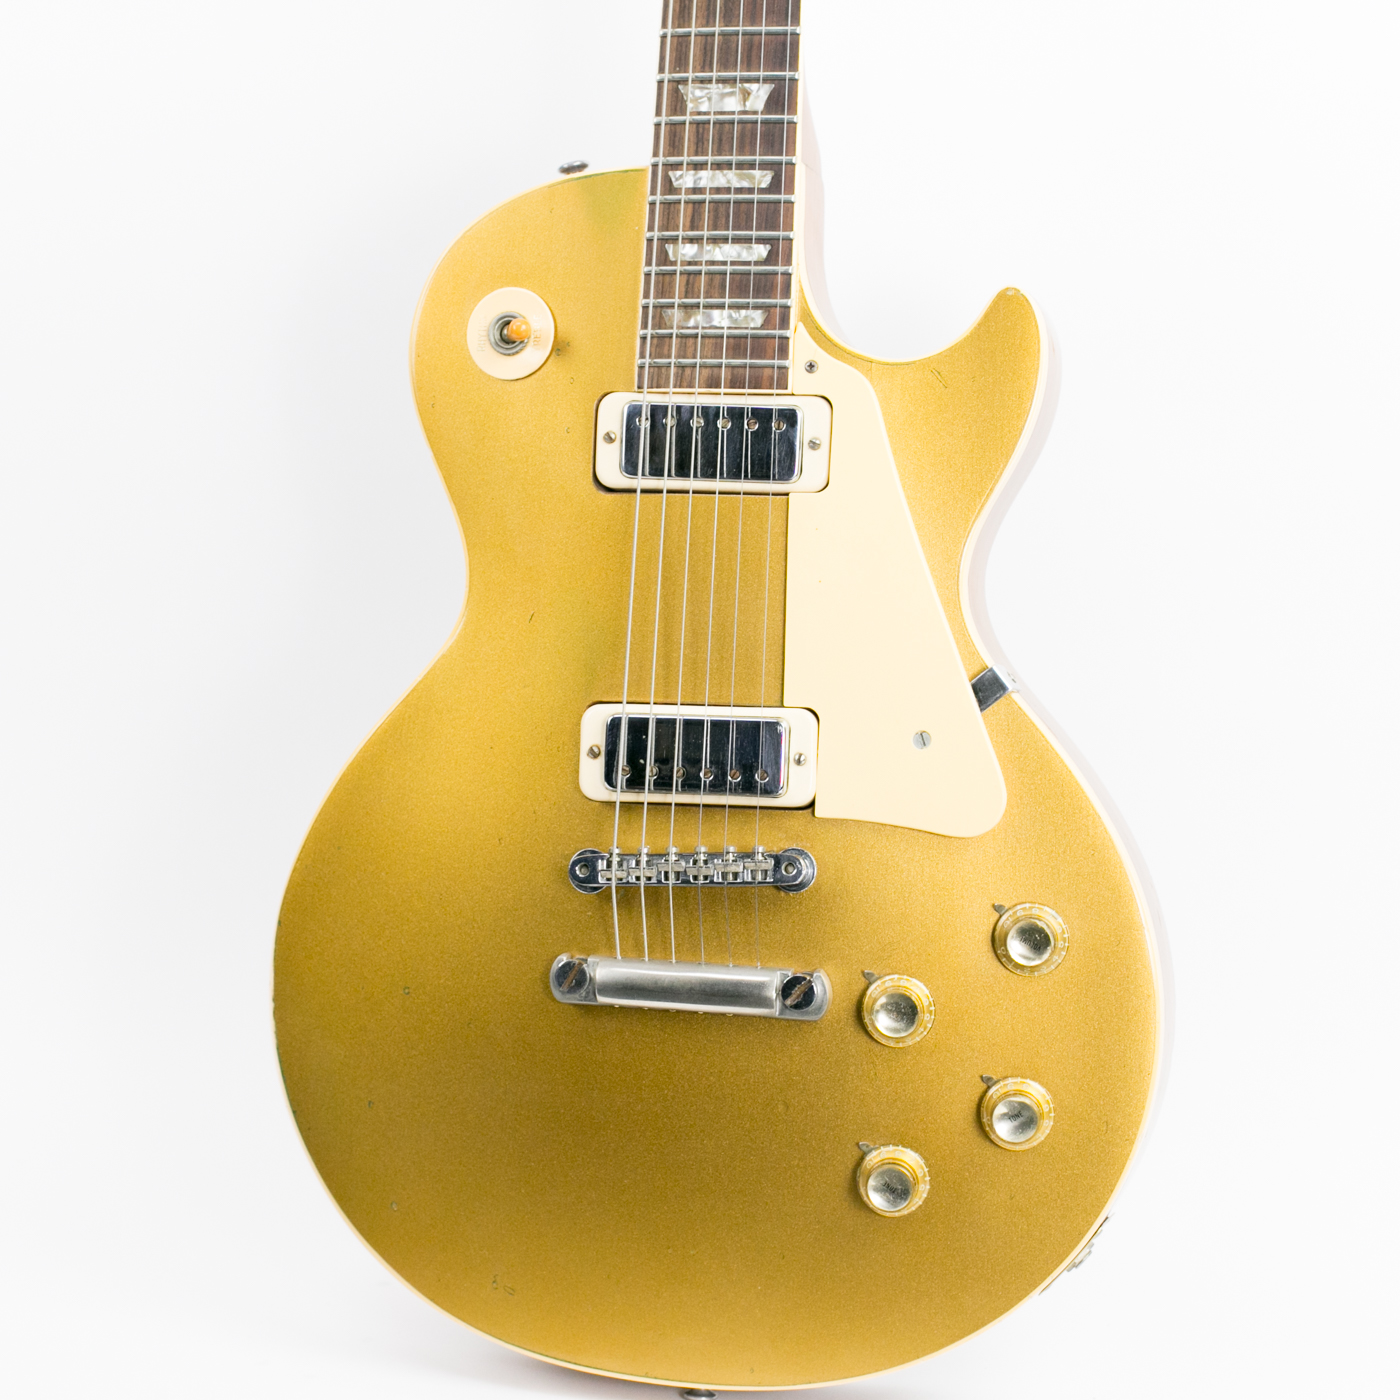 1974 gibson les paul deluxe gold top guitars electric solid body Les Paul Deluxe Mini Humbuckers 1974 gibson les paul deluxe gold top very good original hard 3 499 00